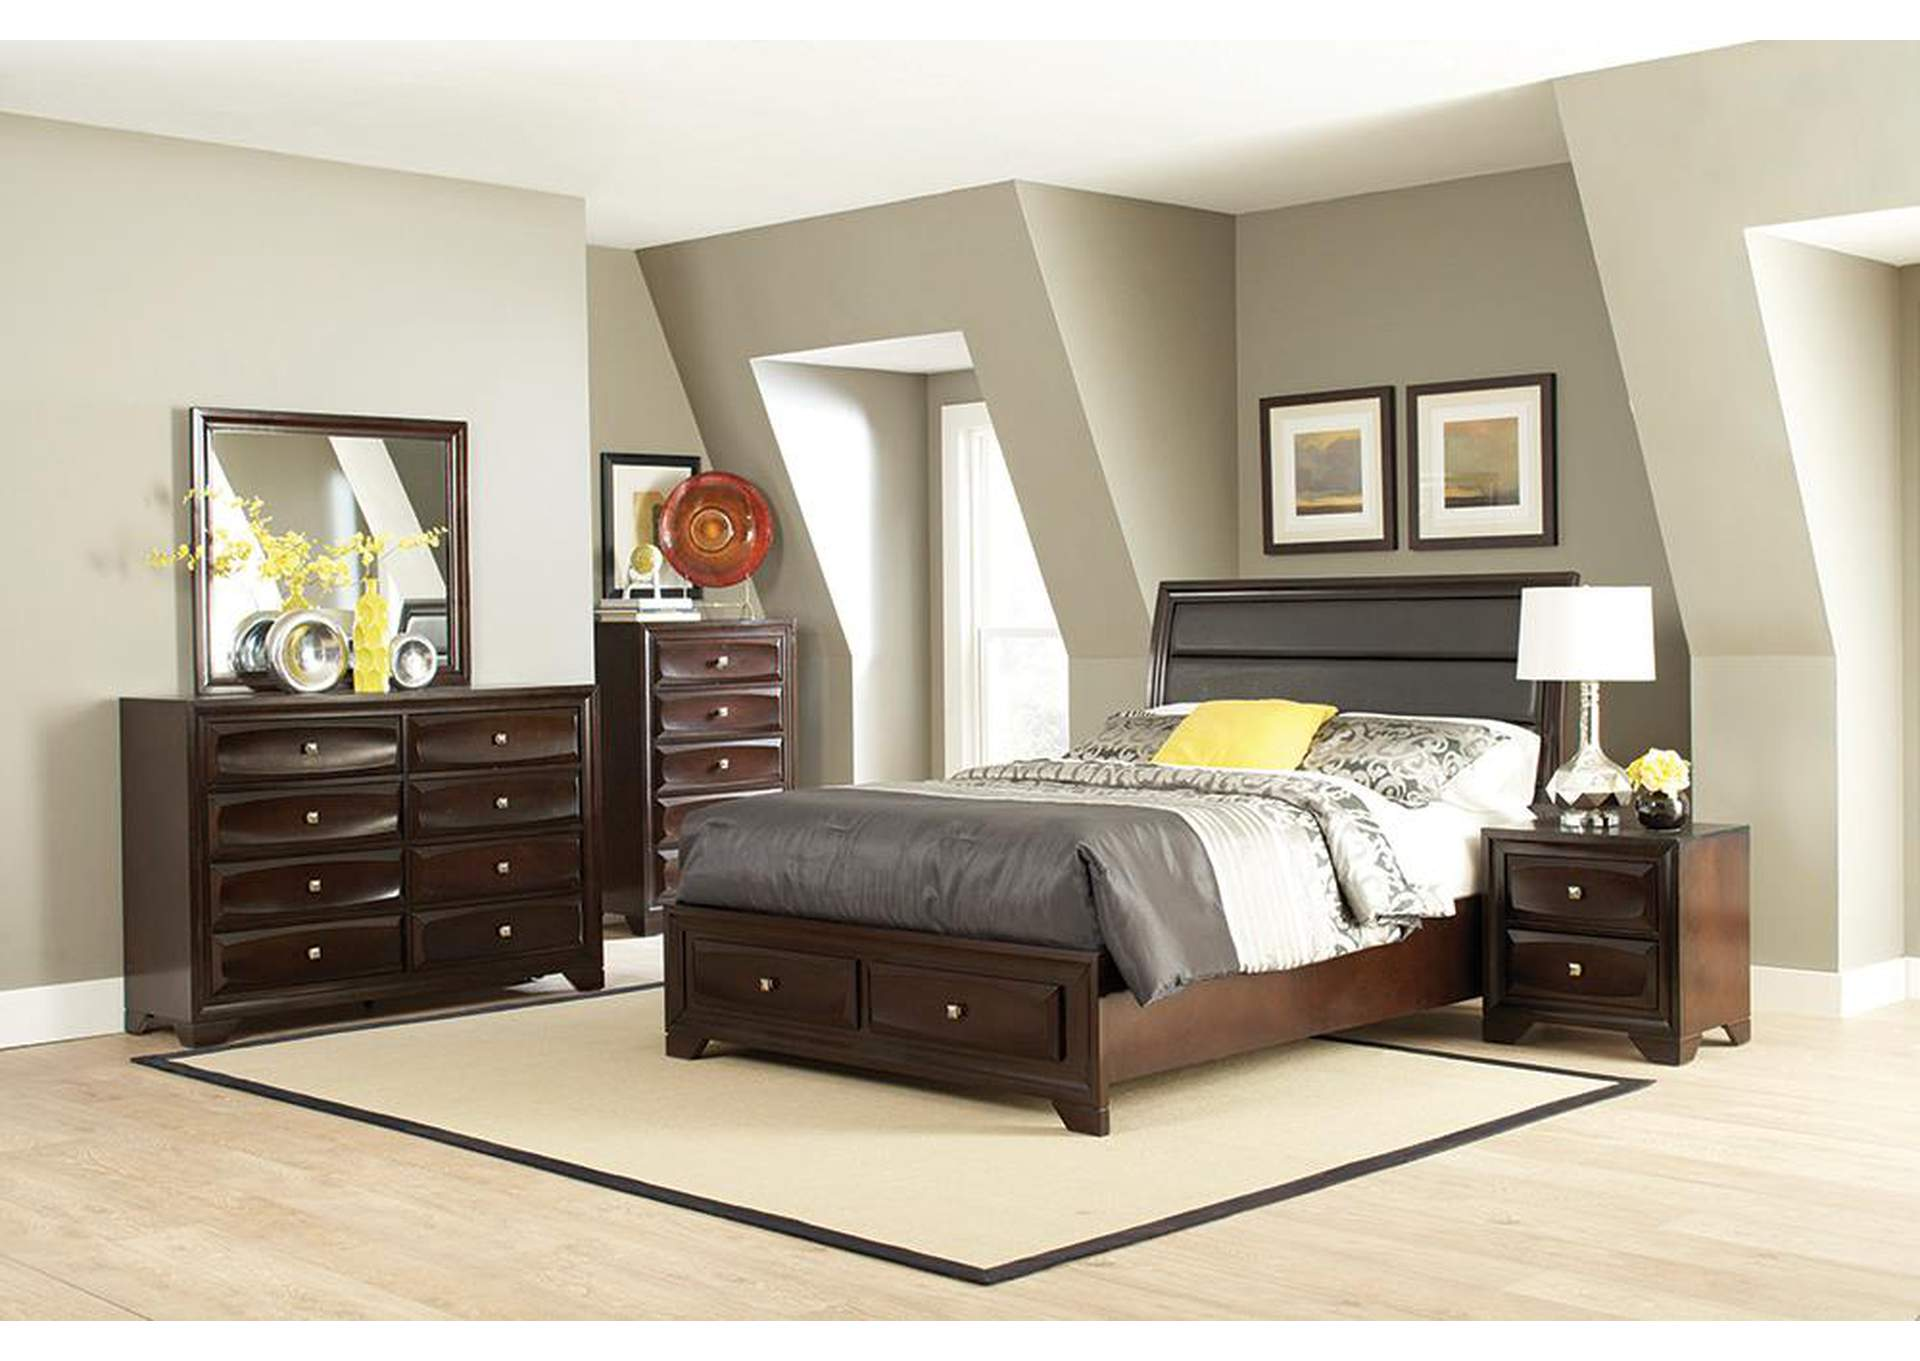 7400 Bedroom Furniture Paterson Nj Free